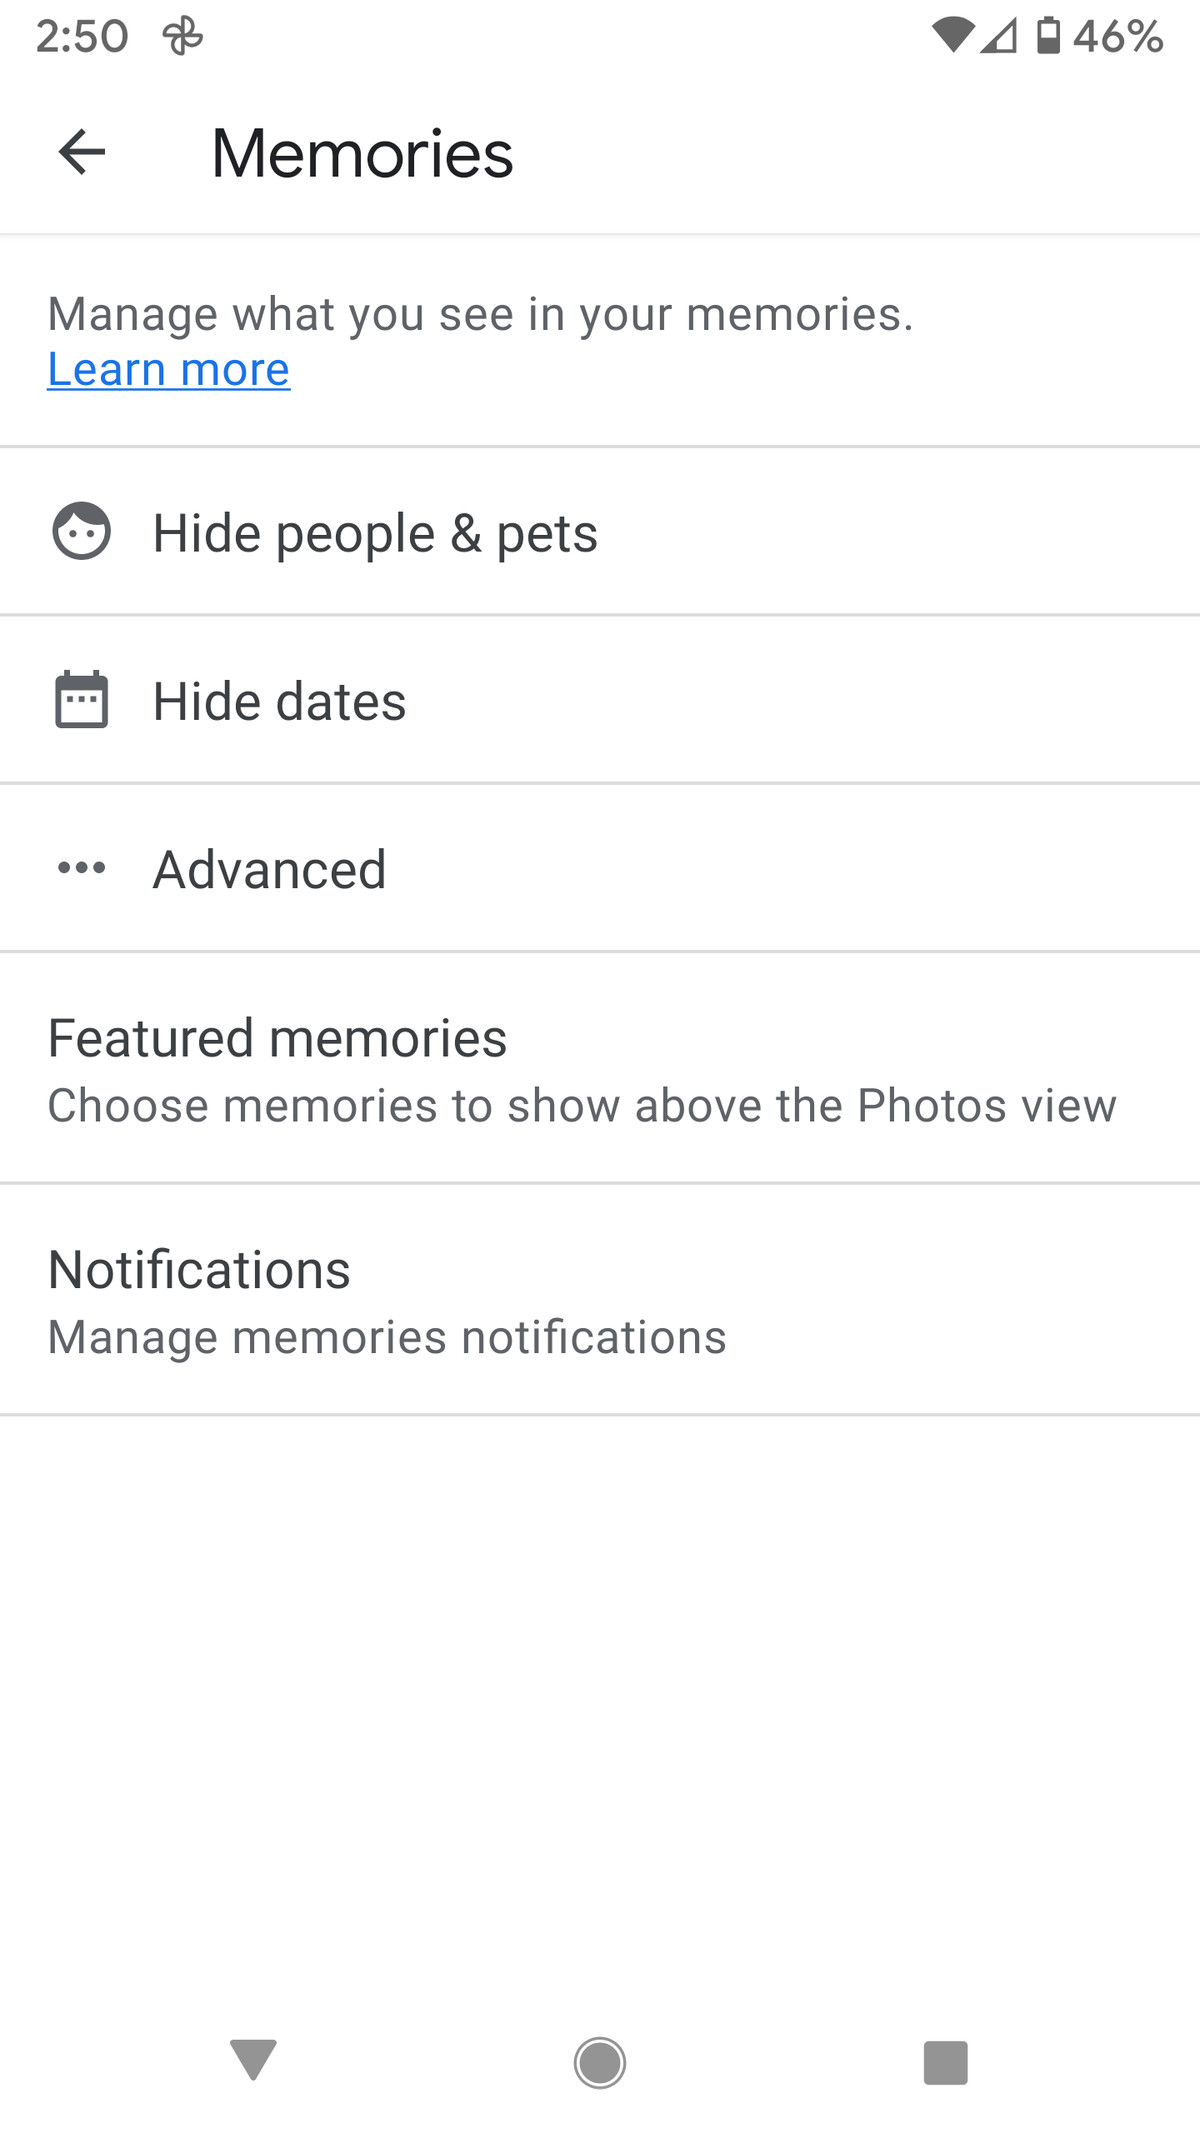 Google Photos' Memories page lets you hide people, pets, or dates.